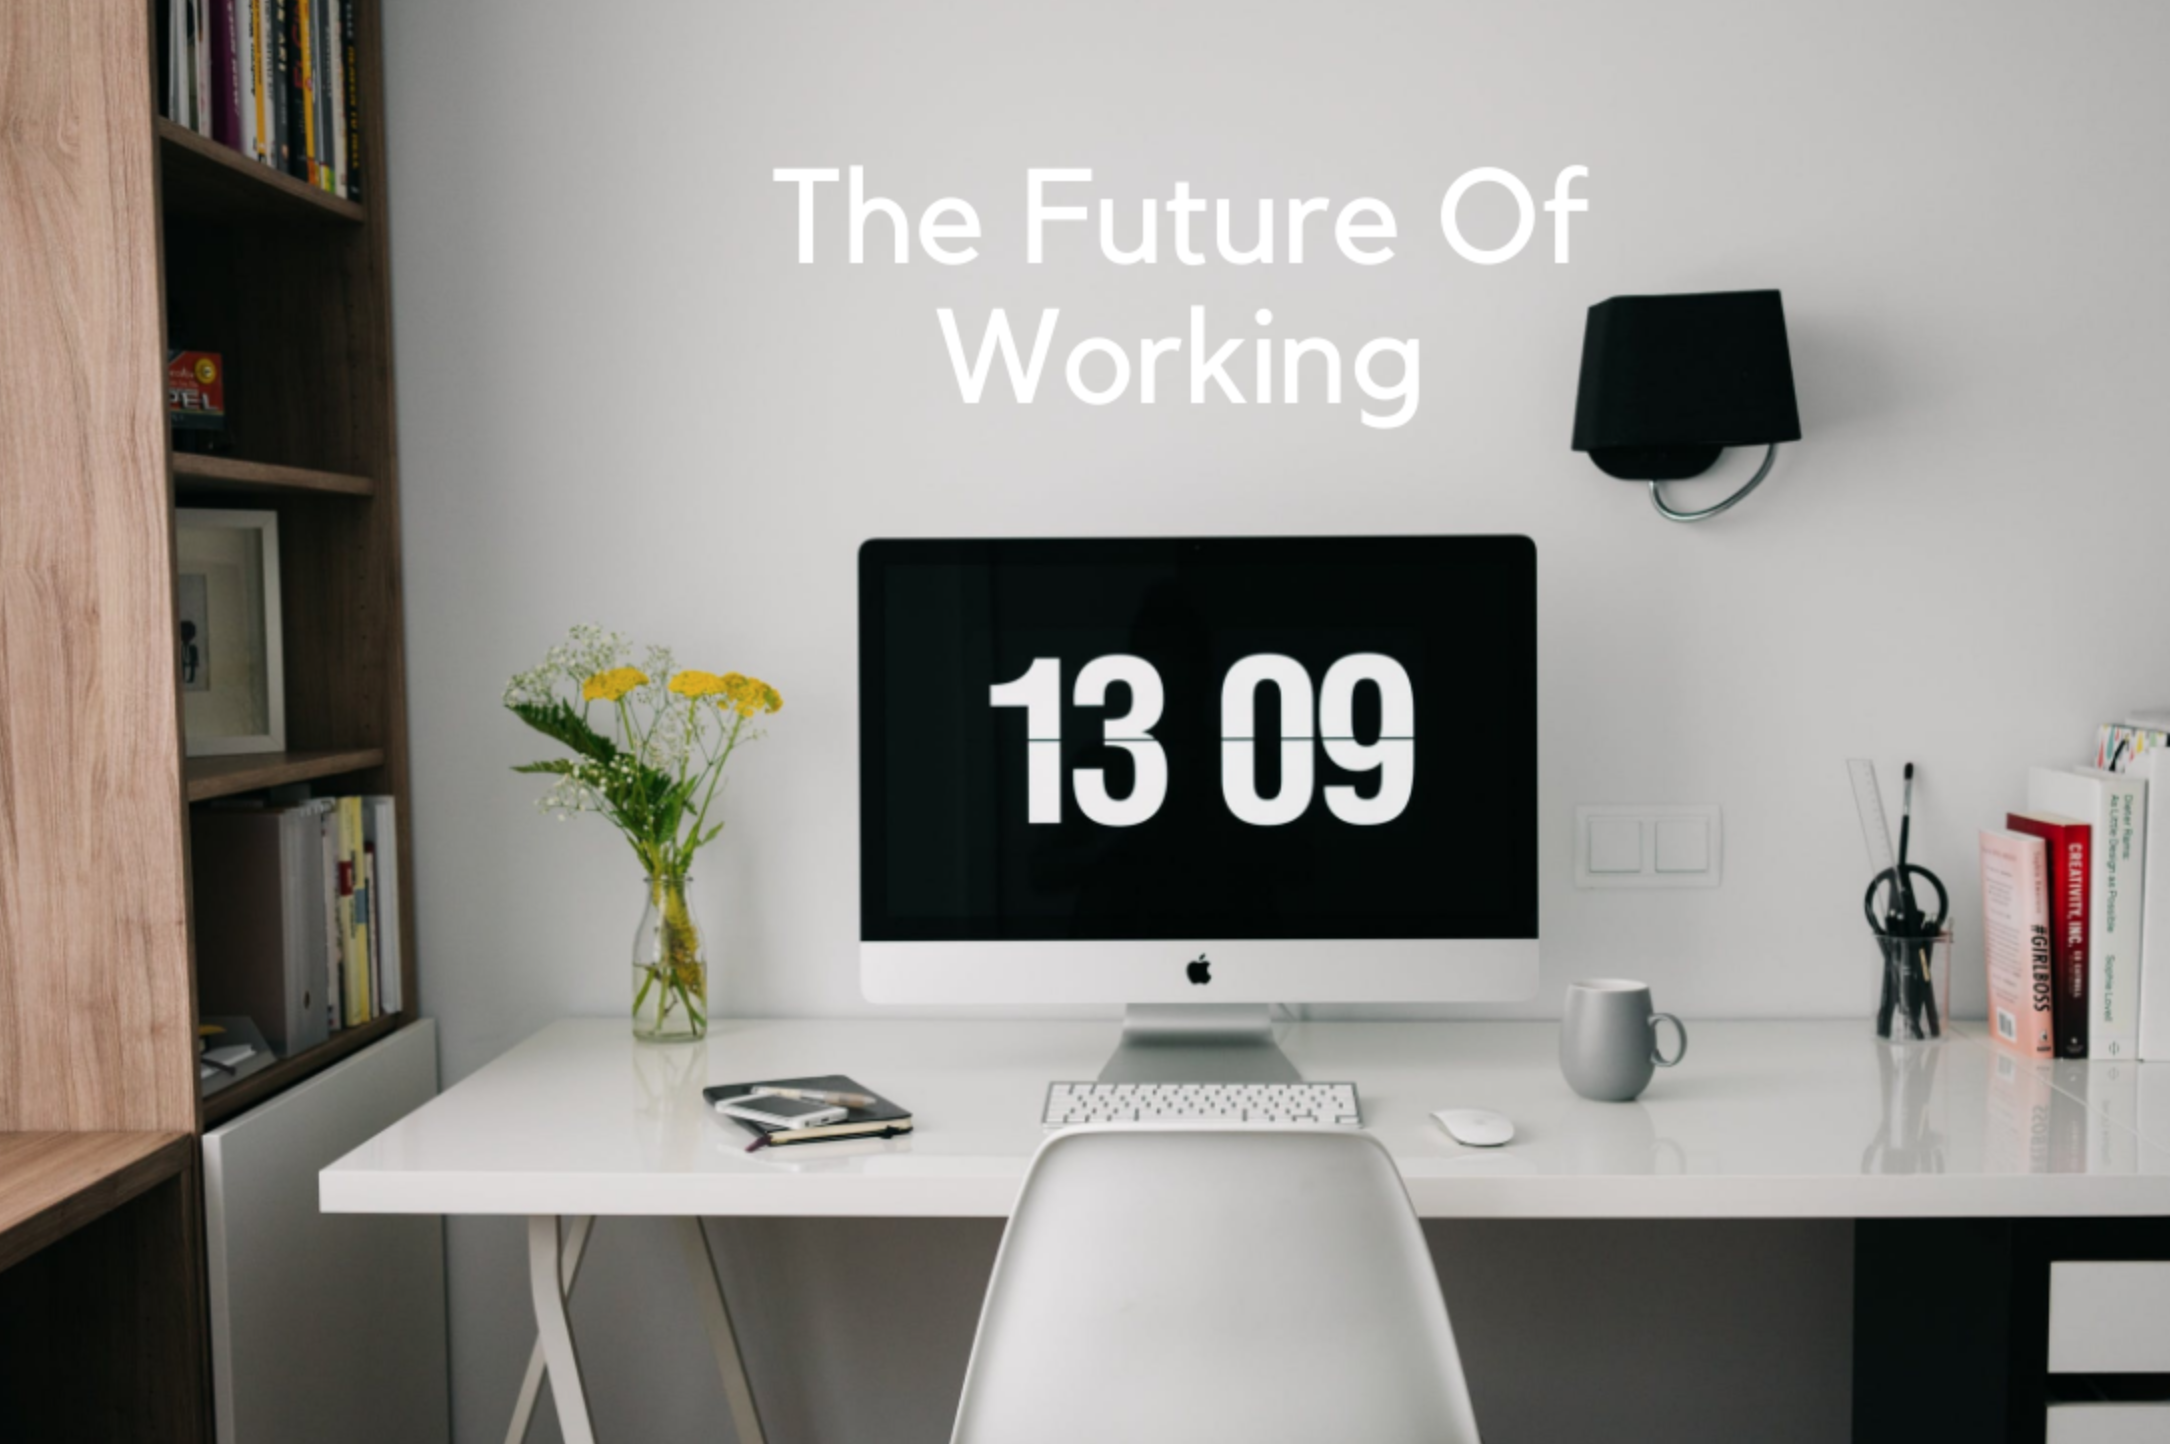 The Future Of Working